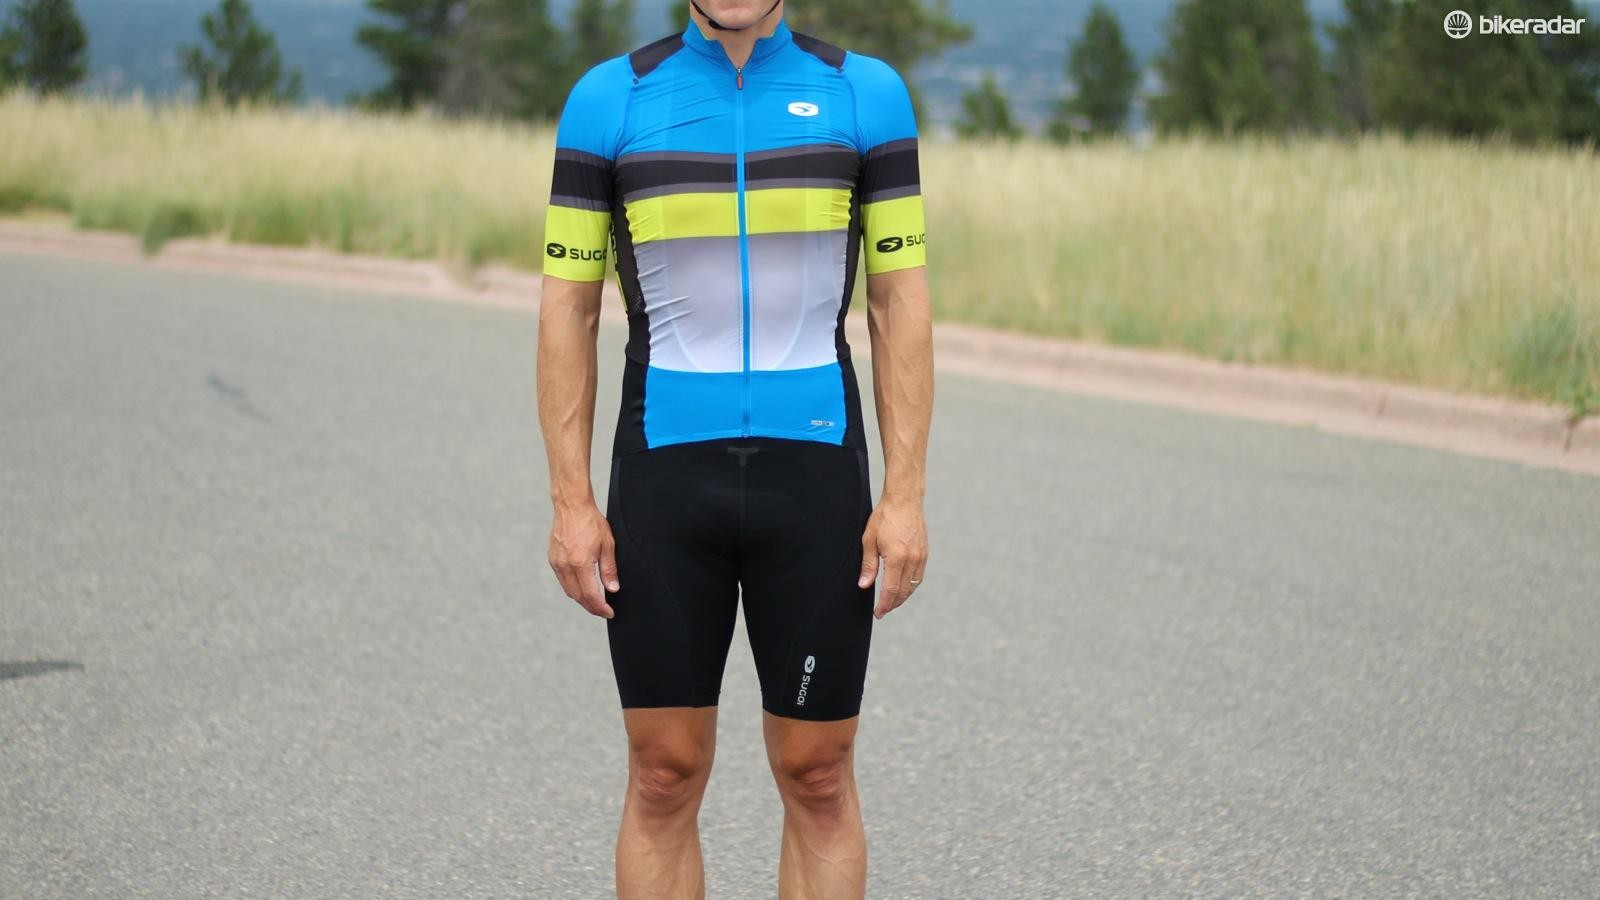 The Sugoi RSE kit is thin and lightweight with seamless grippers